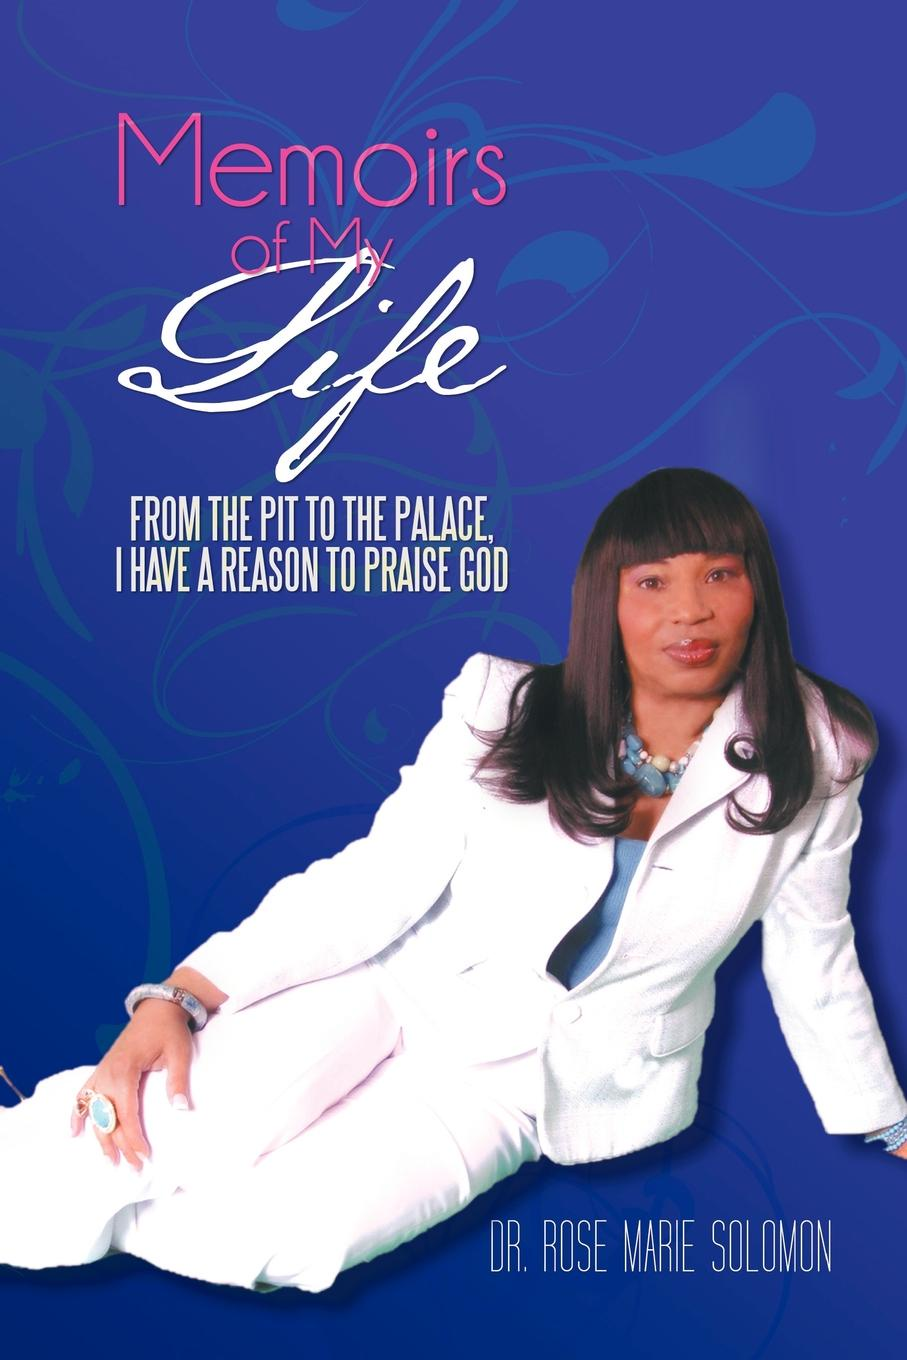 цена на Dr Rose Marie Solomon Memoirs of My Life. From the Pit to the Palace, I Have a Reason to Praise God